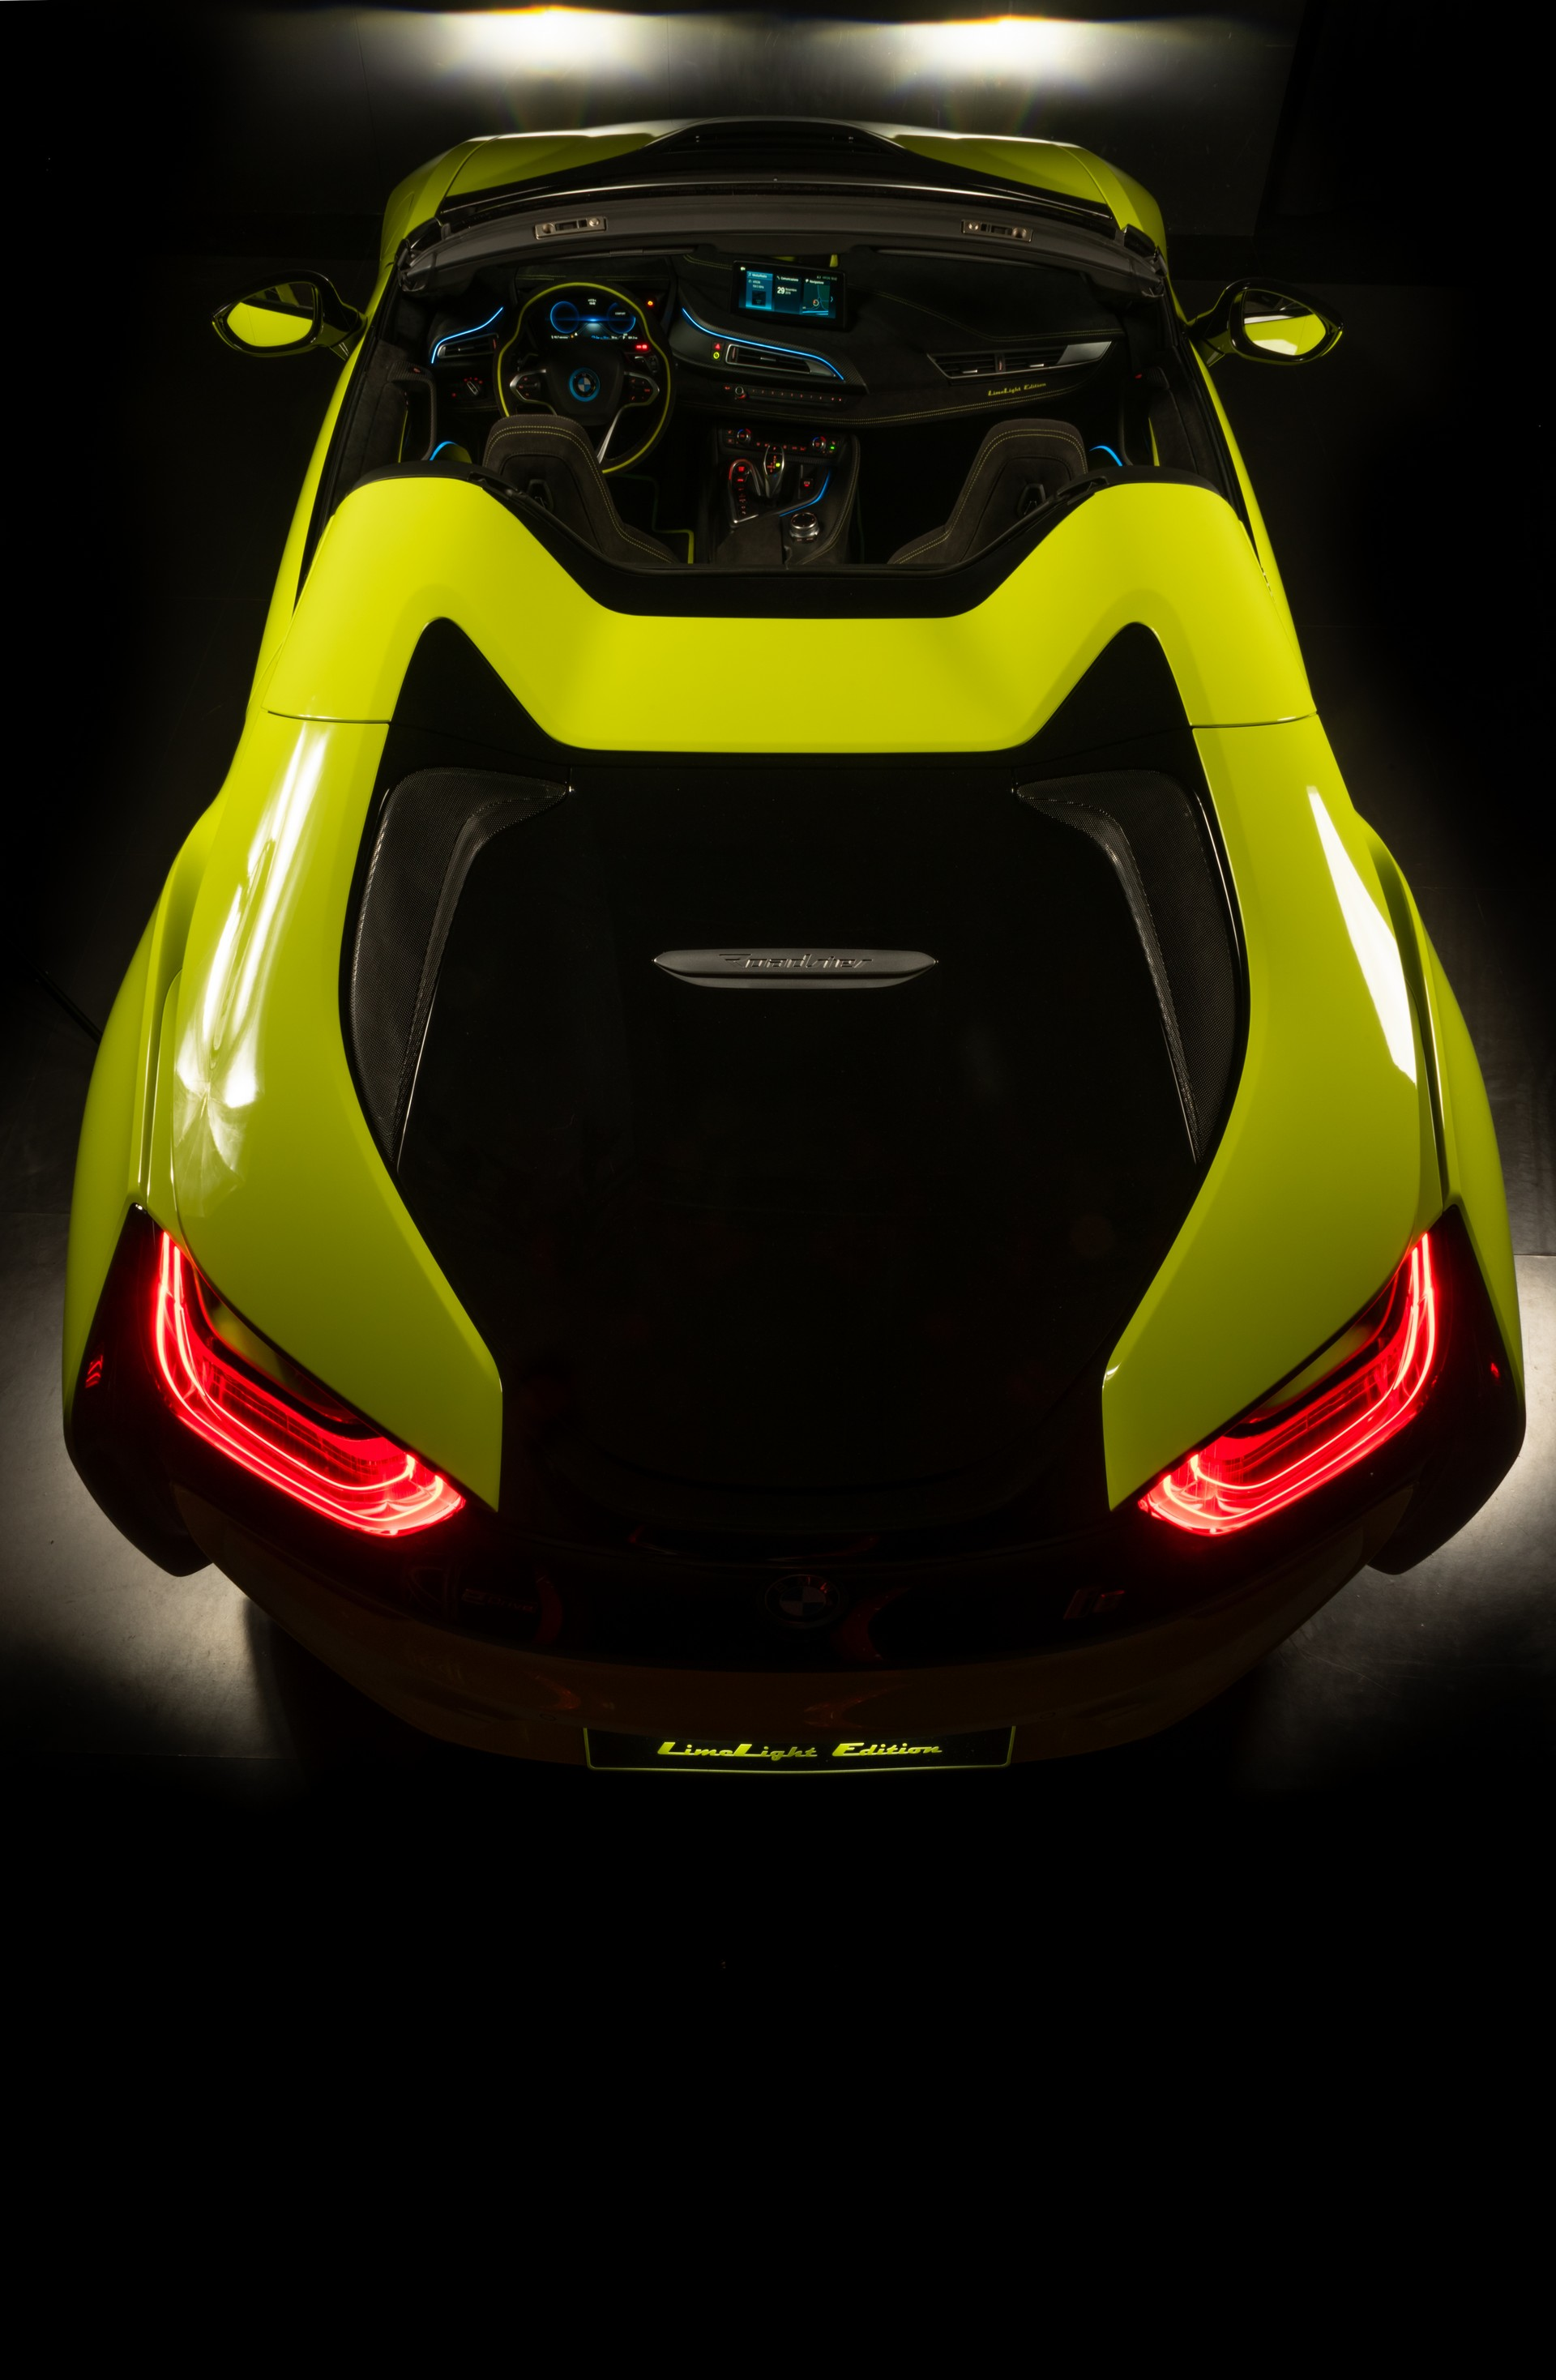 BMW-i8-Roadster-LimeLight-Edition-8